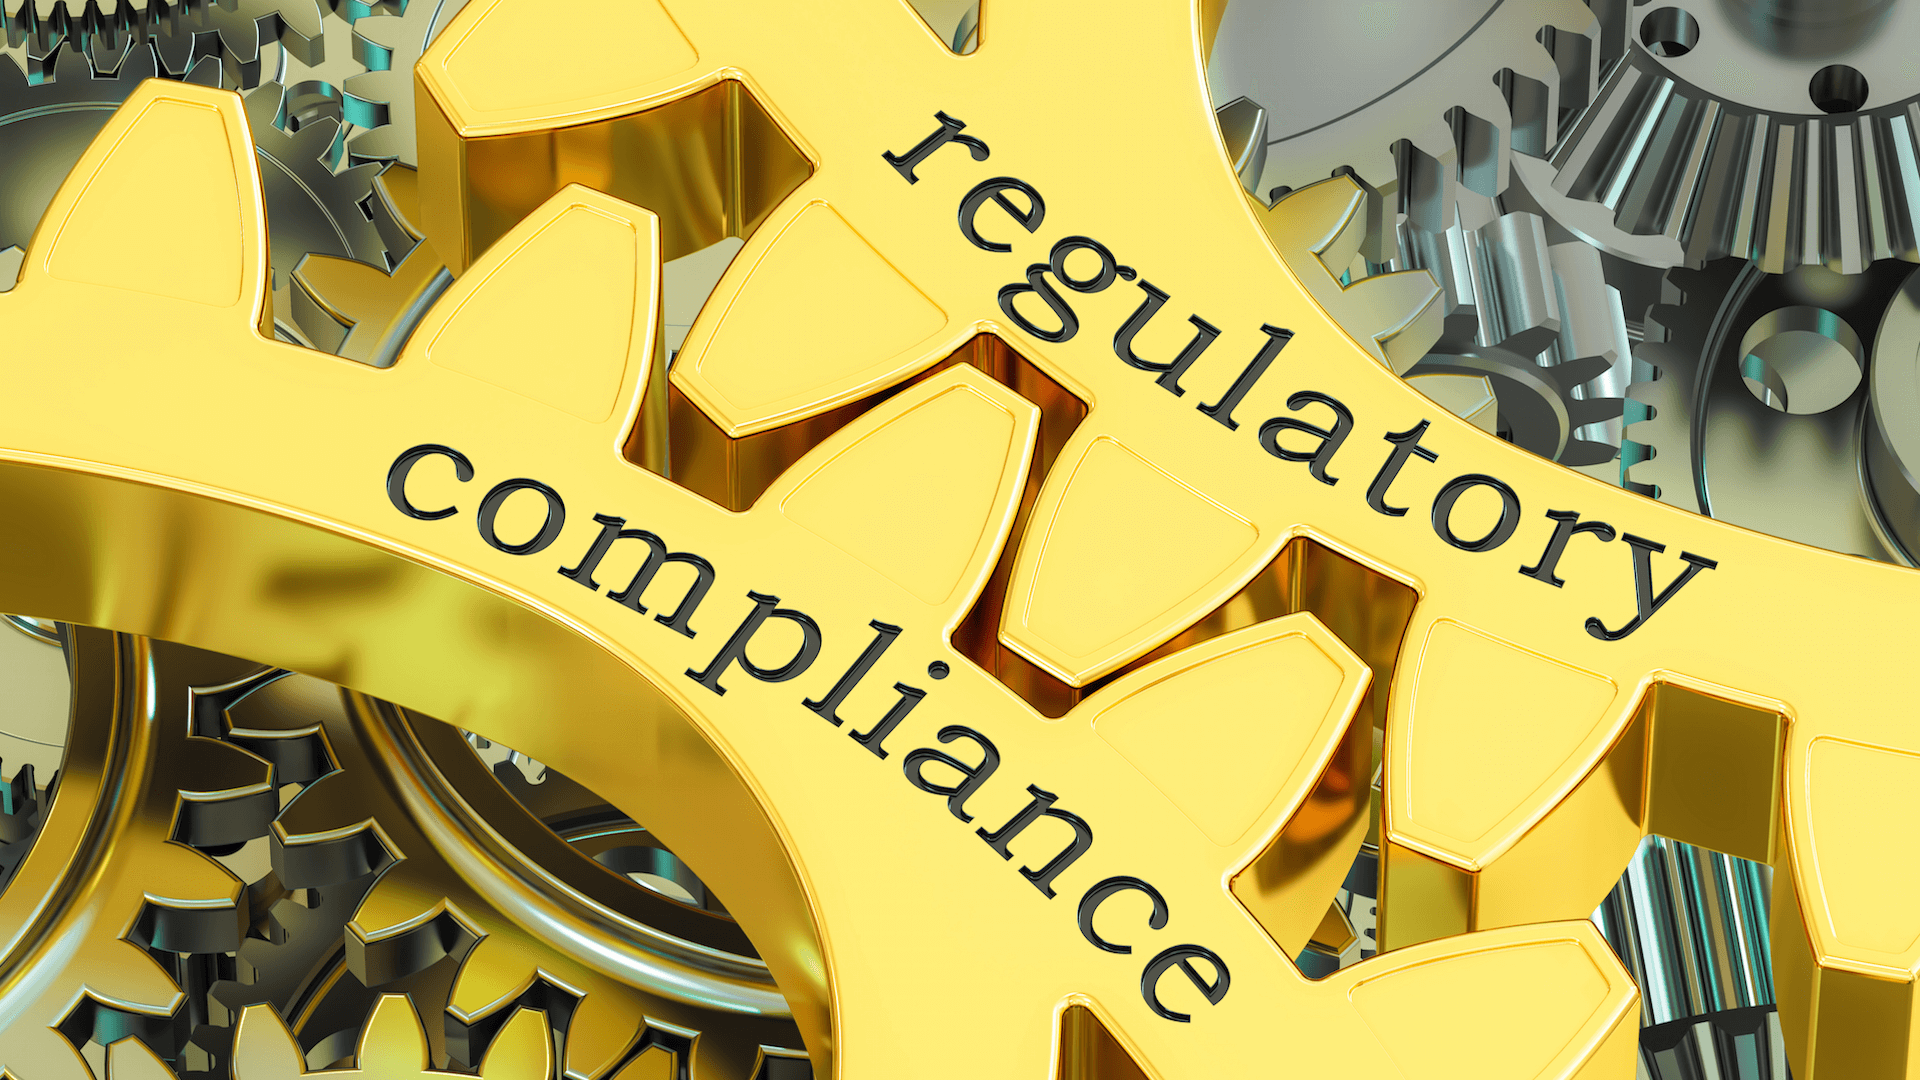 Recent funding news indicates increased need for data compliance management